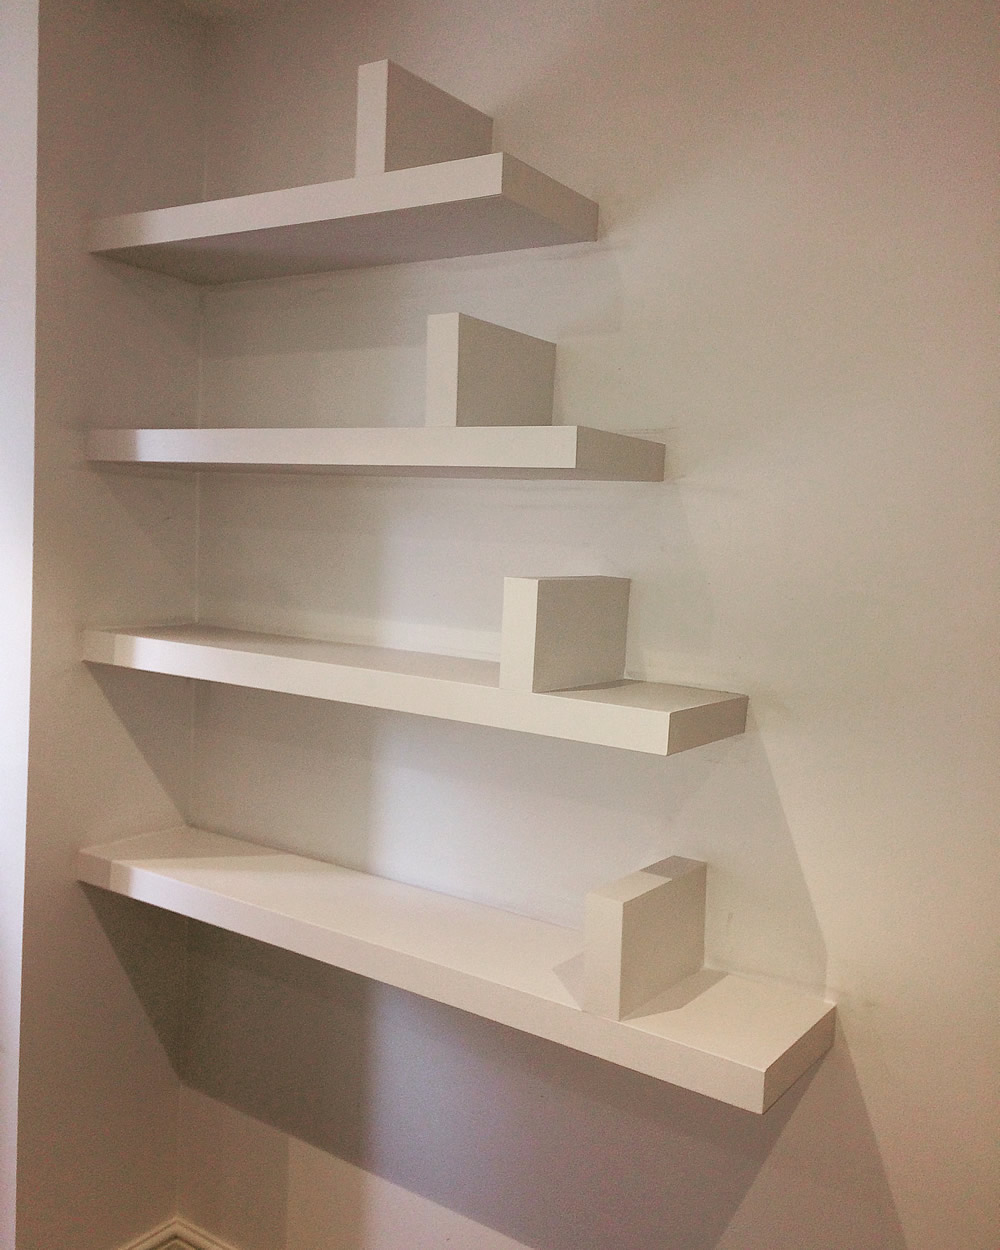 floating shelves with book ends adam whittle shelf bookends gold corner bookshelf ikea bookcase command hooks for hanging plants bedroom closet solutions hardwood fireplace